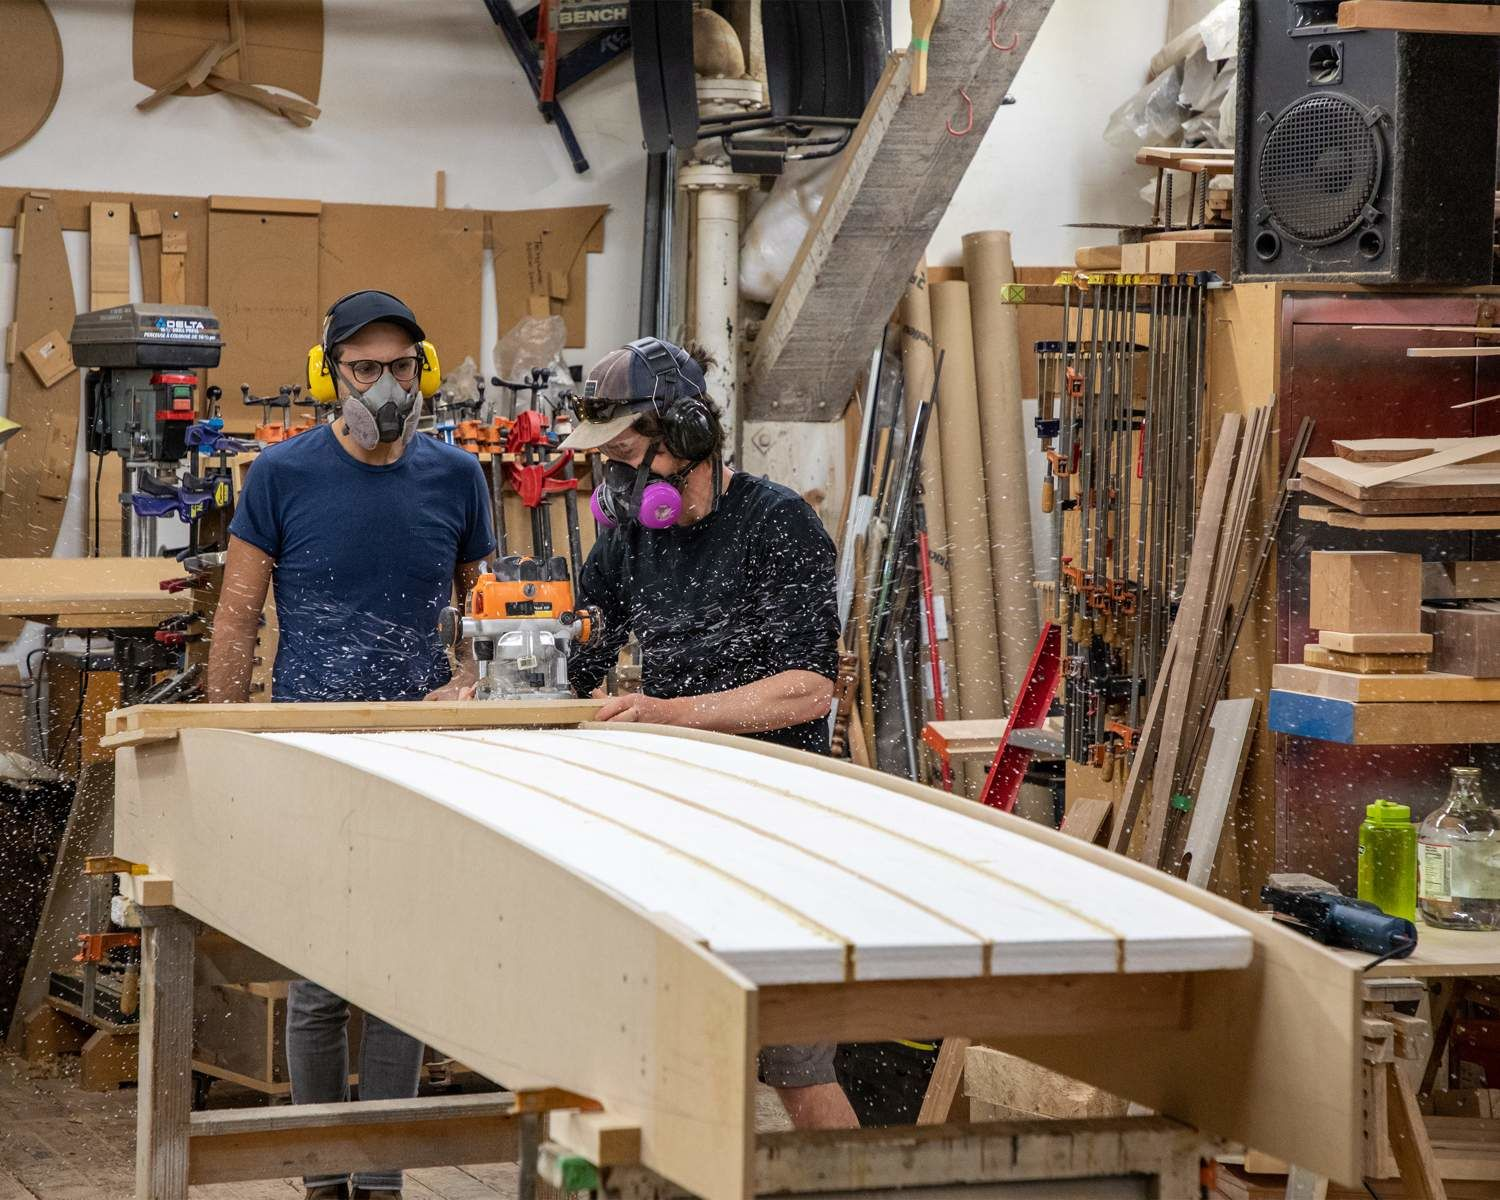 Michael and Stuart Coleman in Vancouver making a surfboard